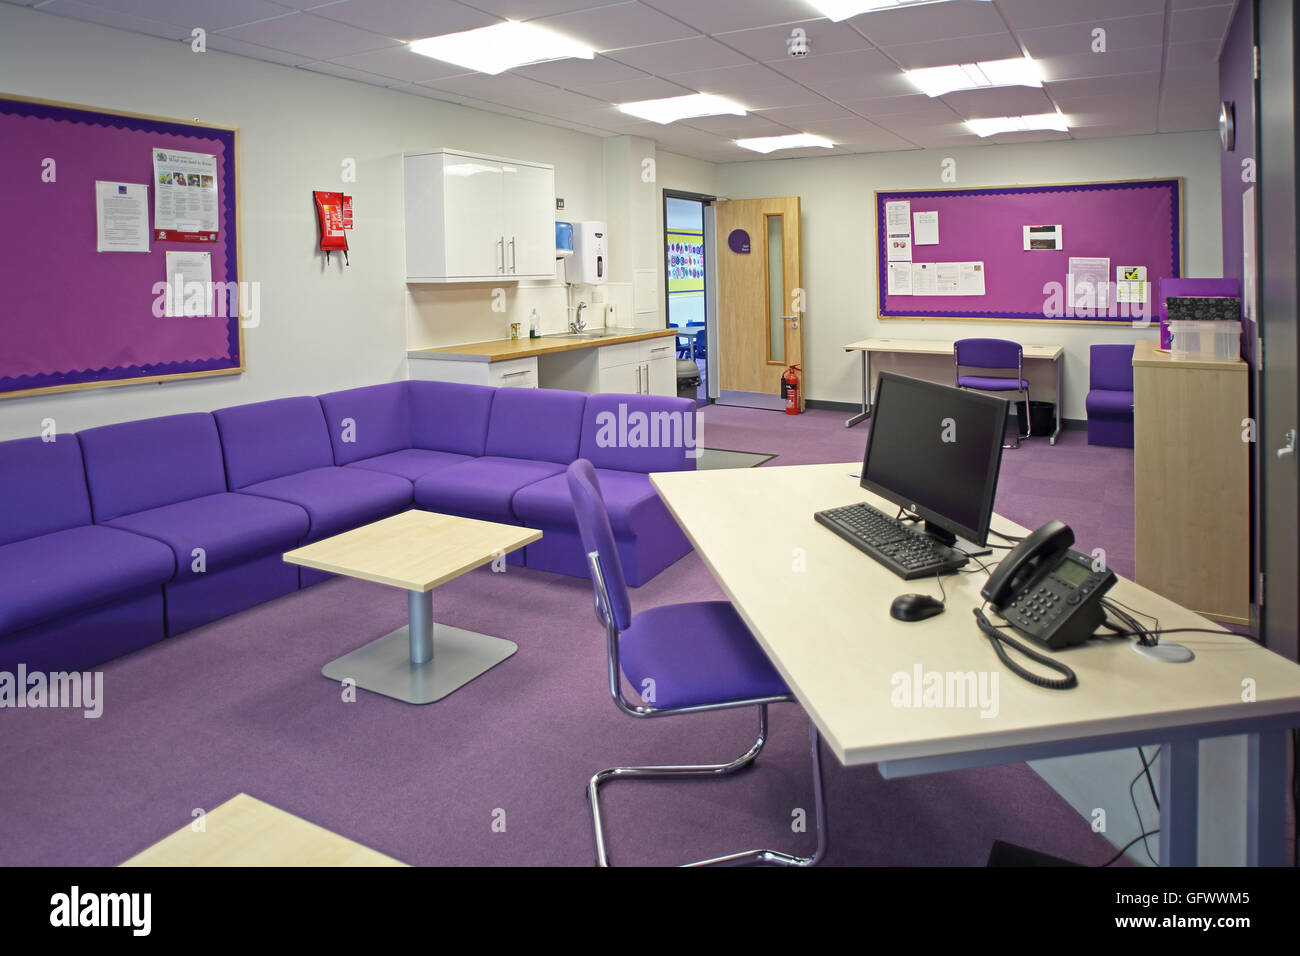 Office/administration area area in a new primary school. Shows administrators desk, seating area and kitchenette Stock Photo